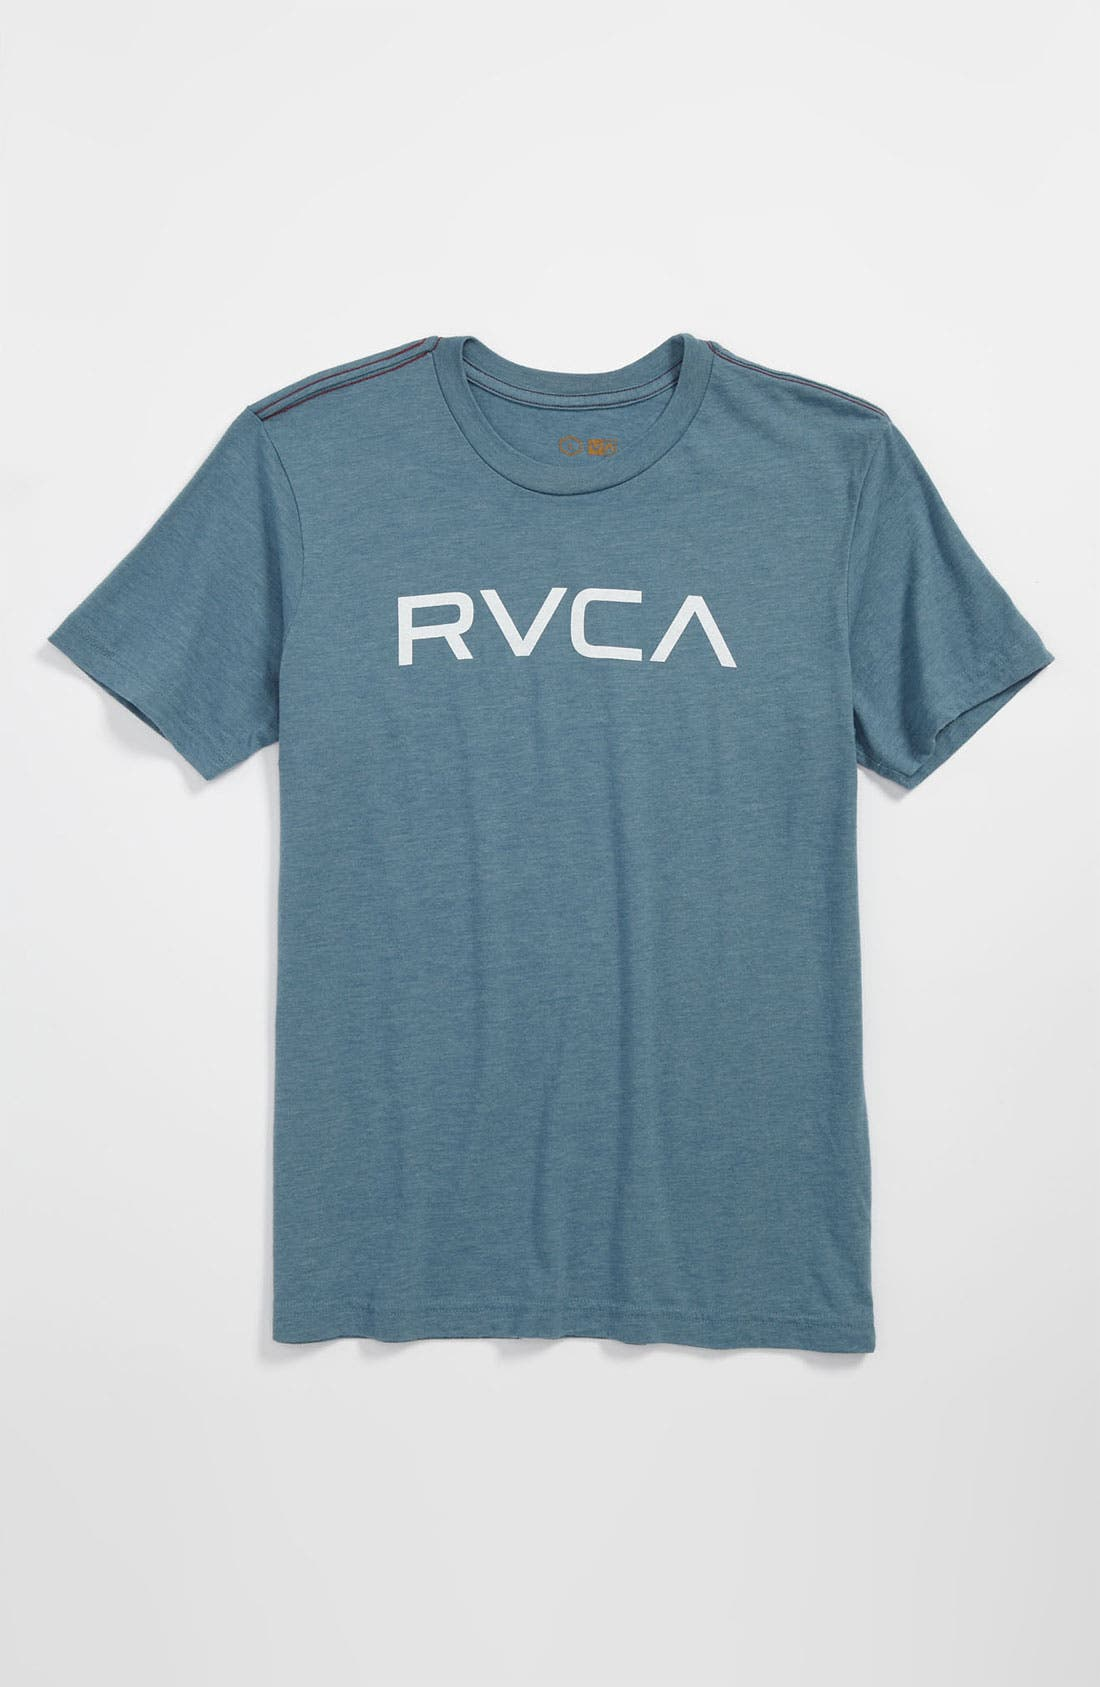 Alternate Image 1 Selected - RVCA 'Big' Graphic T-Shirt (Big Boys)